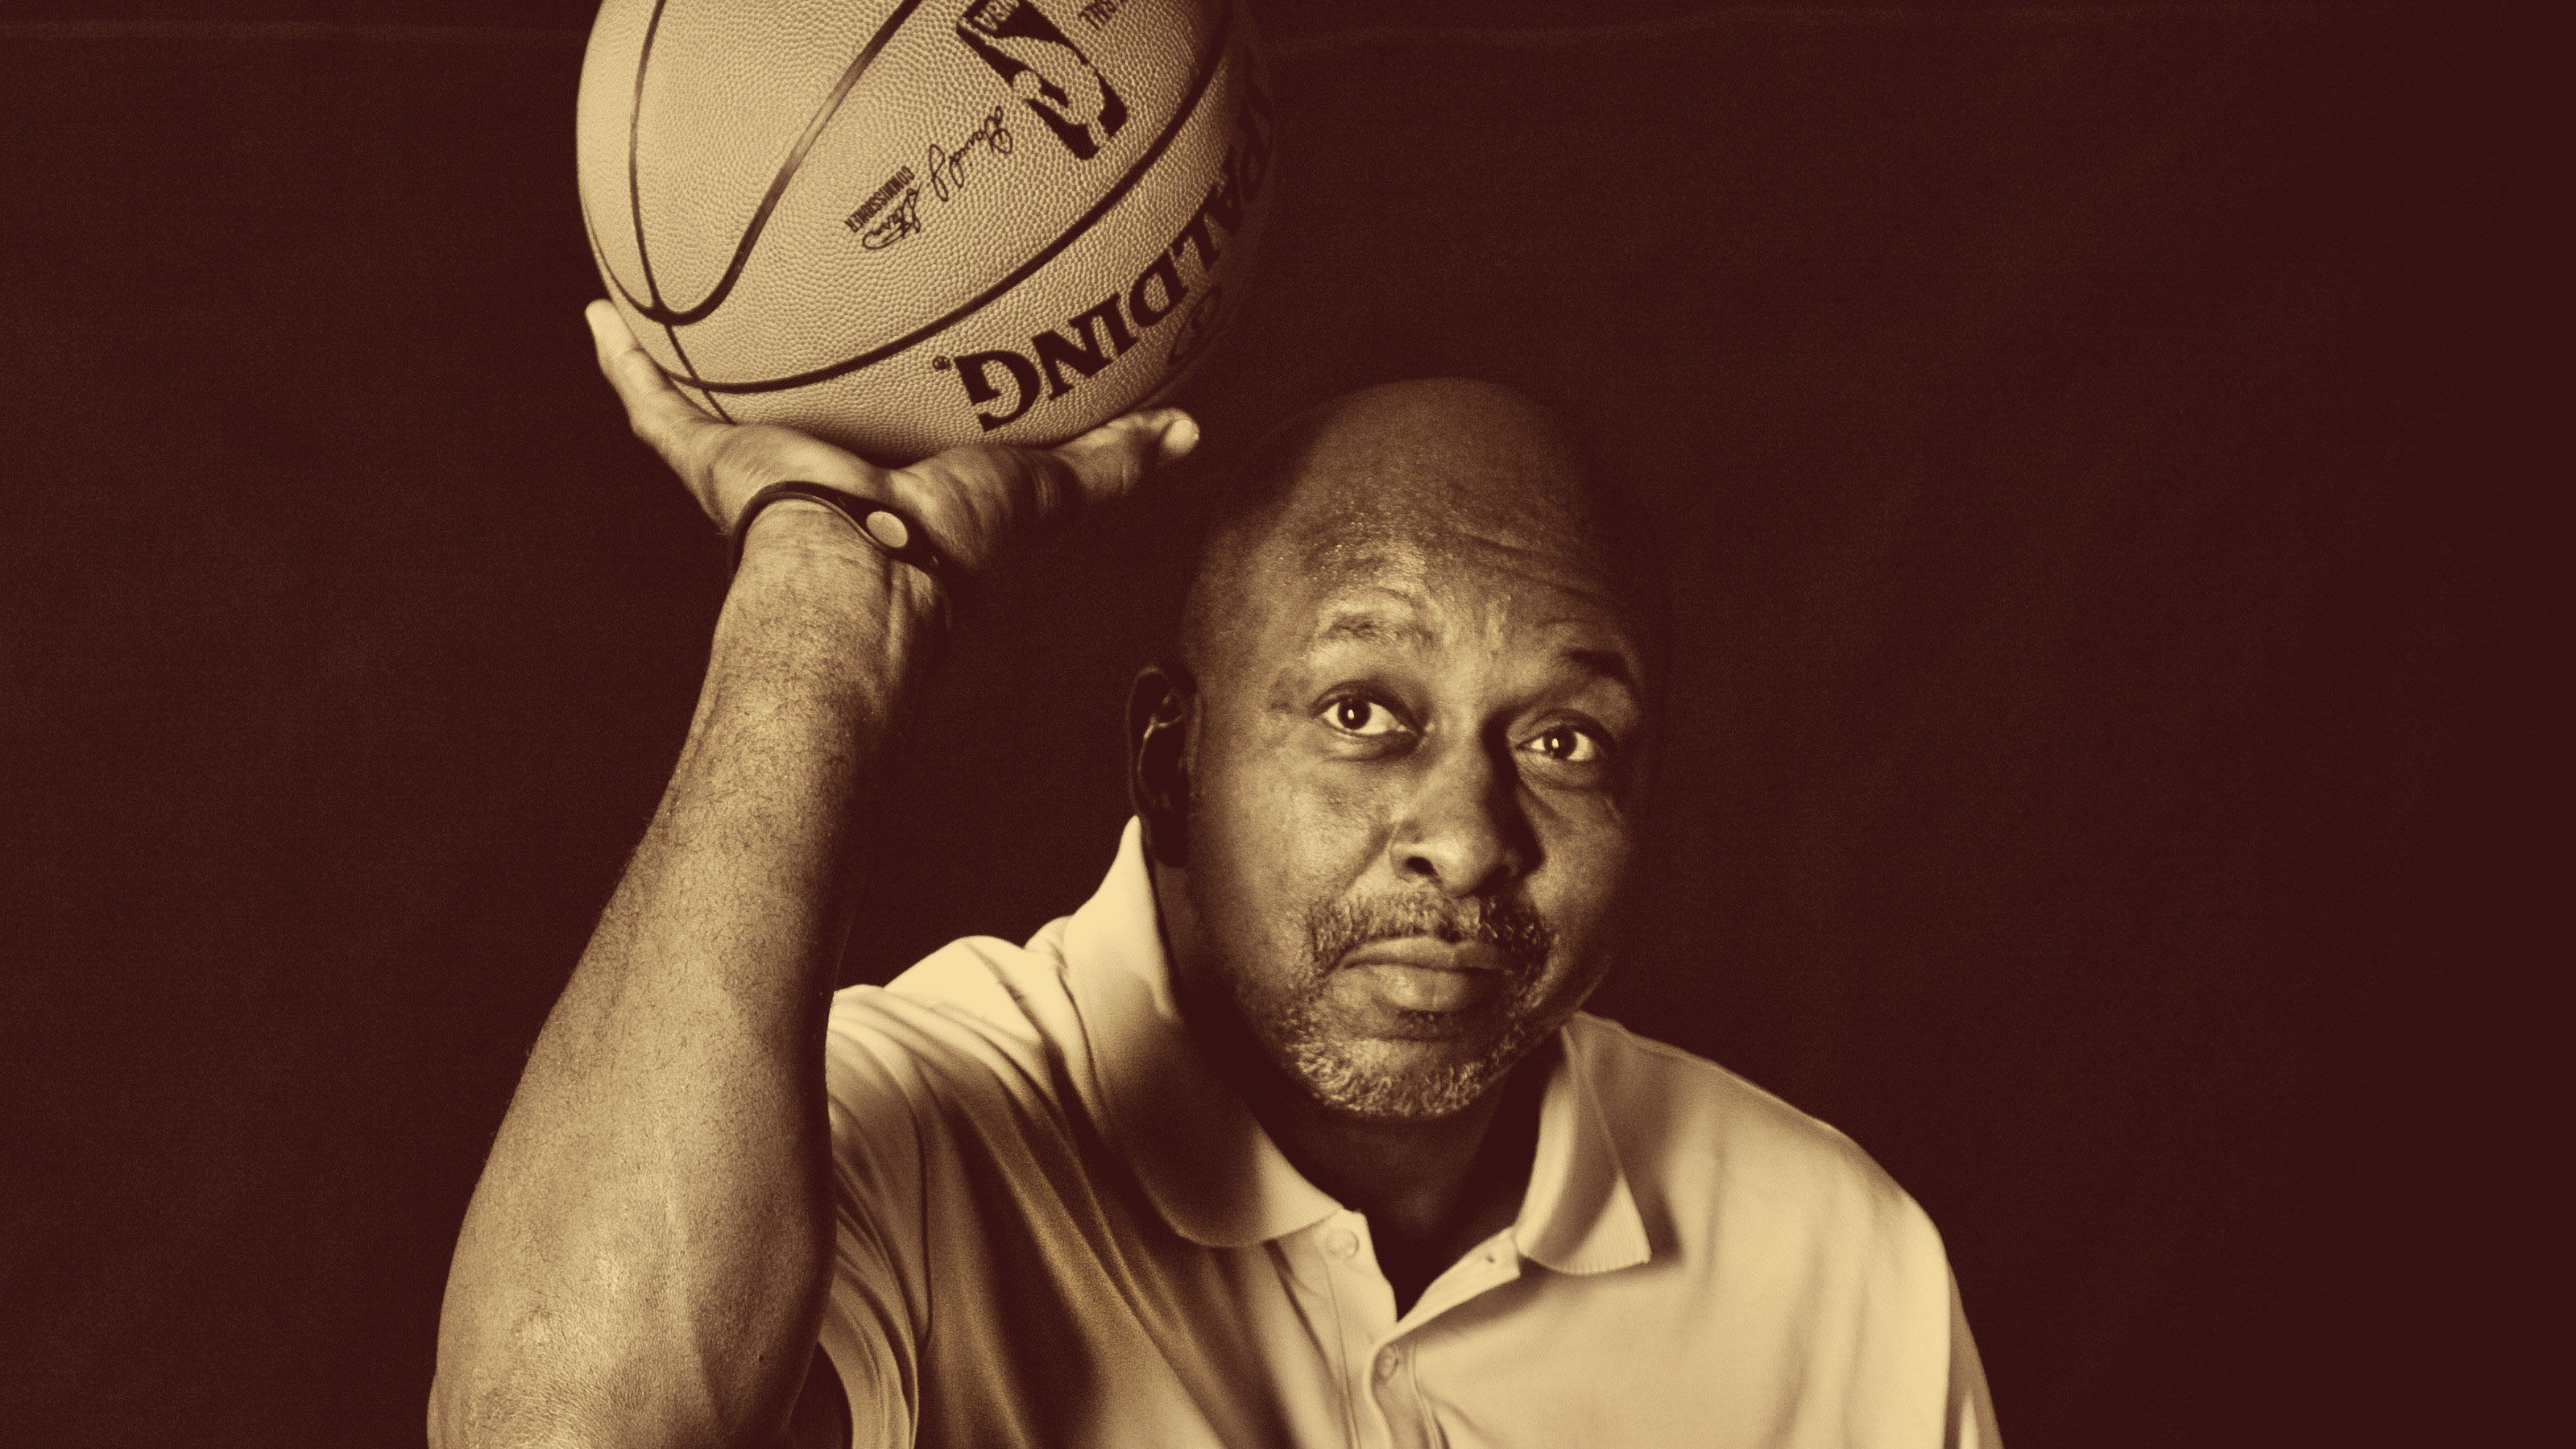 Moses Malone Death at age 60 caused by cardiovascular disease